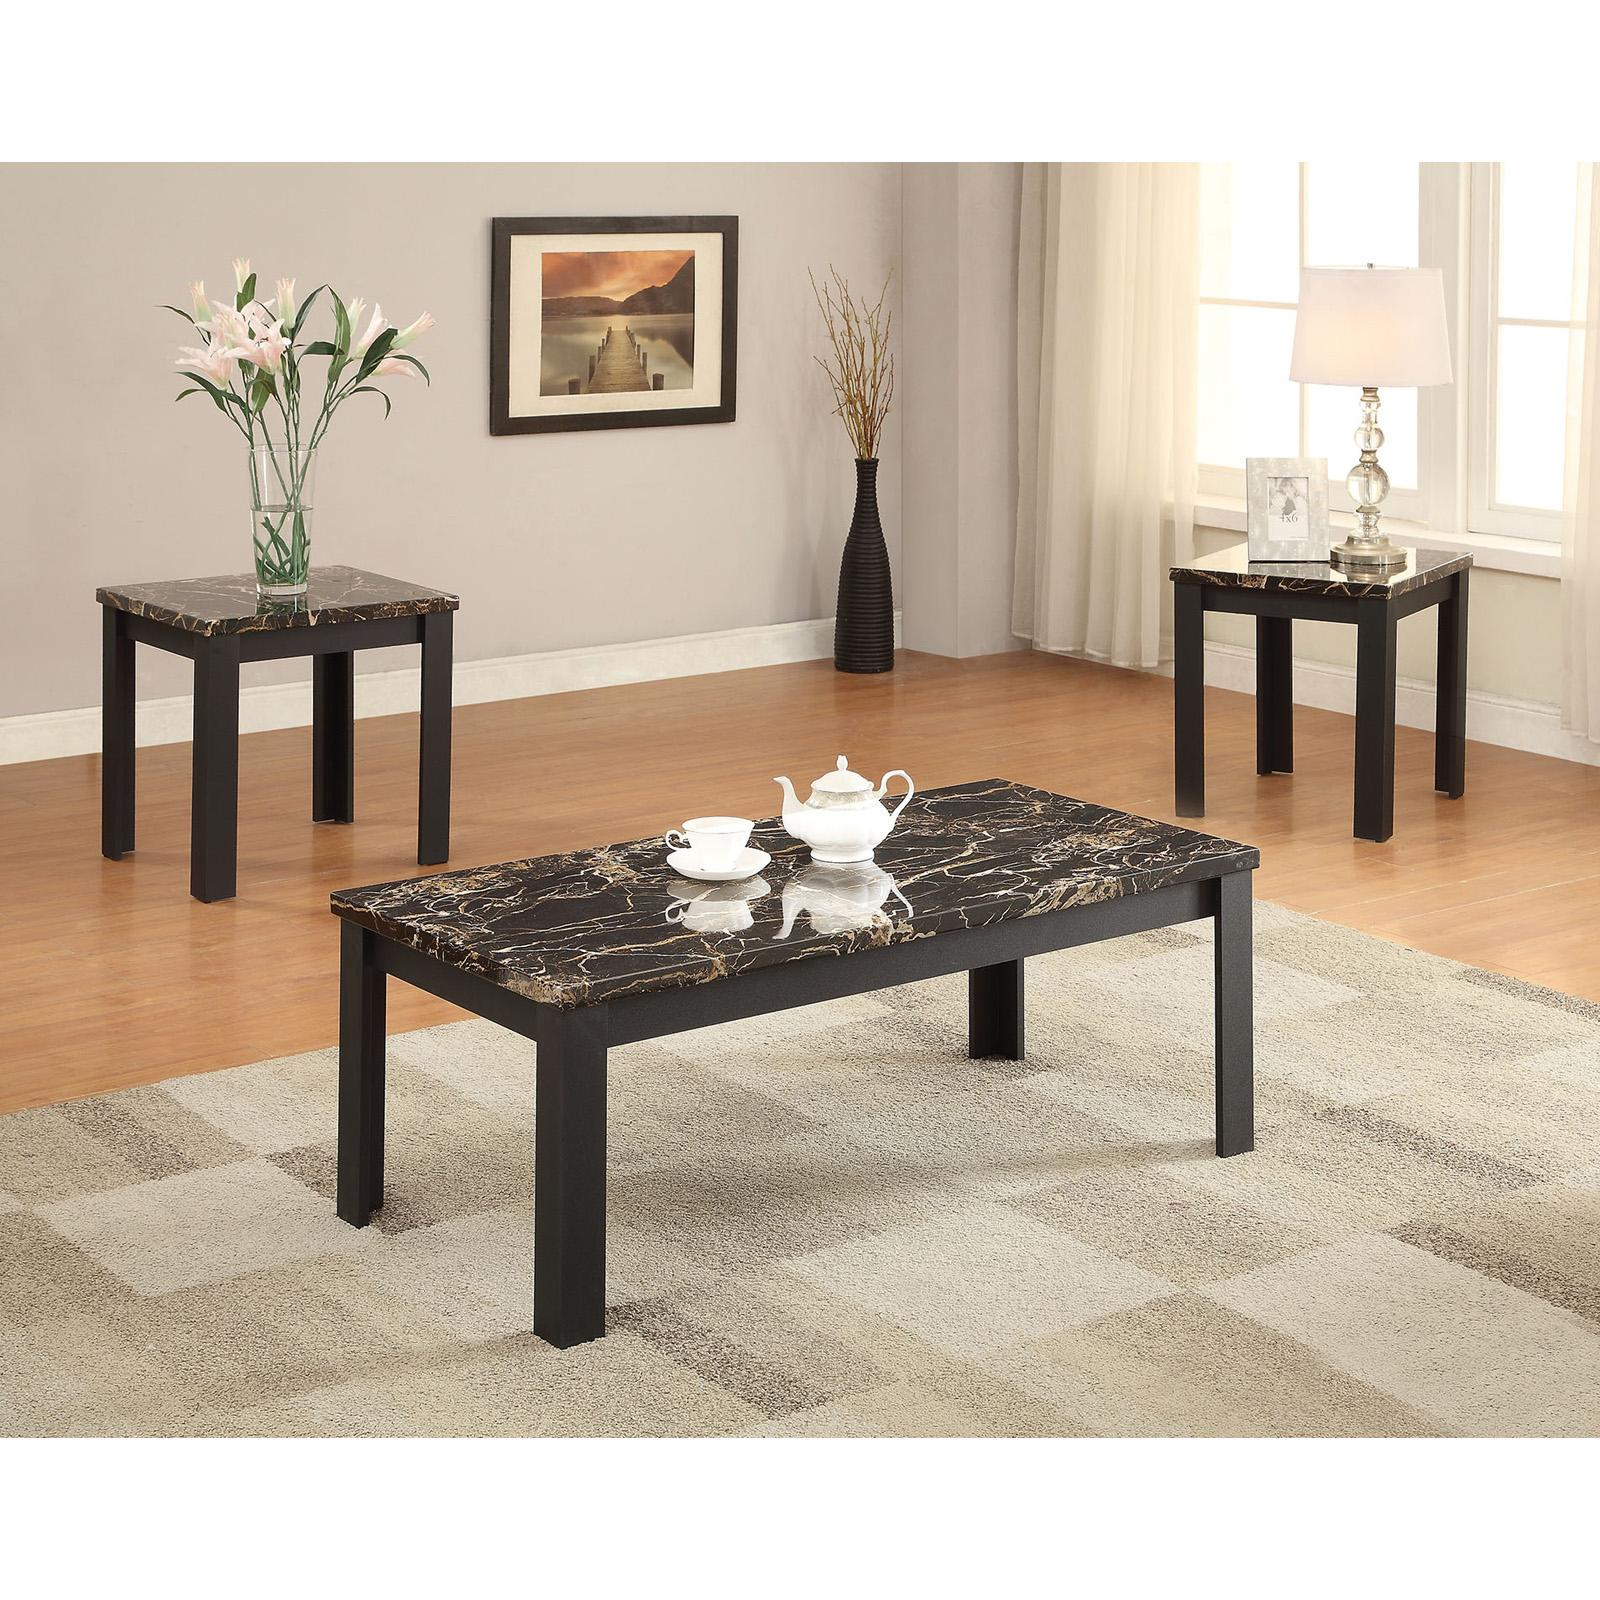 Standard Furniture Cosmo 5 Piece Round Coffee Table Set W: Marble Coffee Table And End Tables